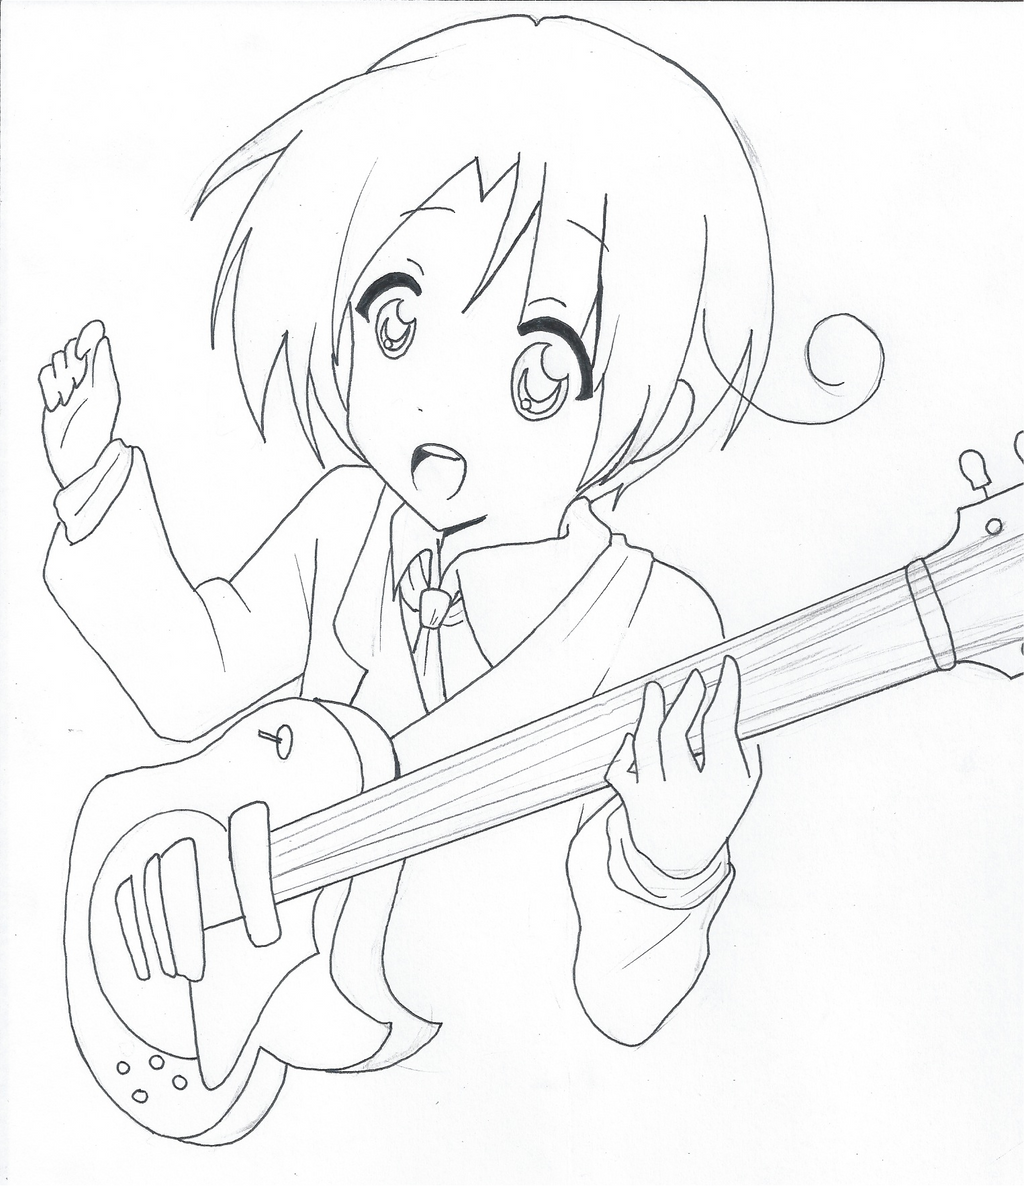 Hetalia Italy And Germany Mpreg Sketch Coloring Page Hetalia Coloring Pages